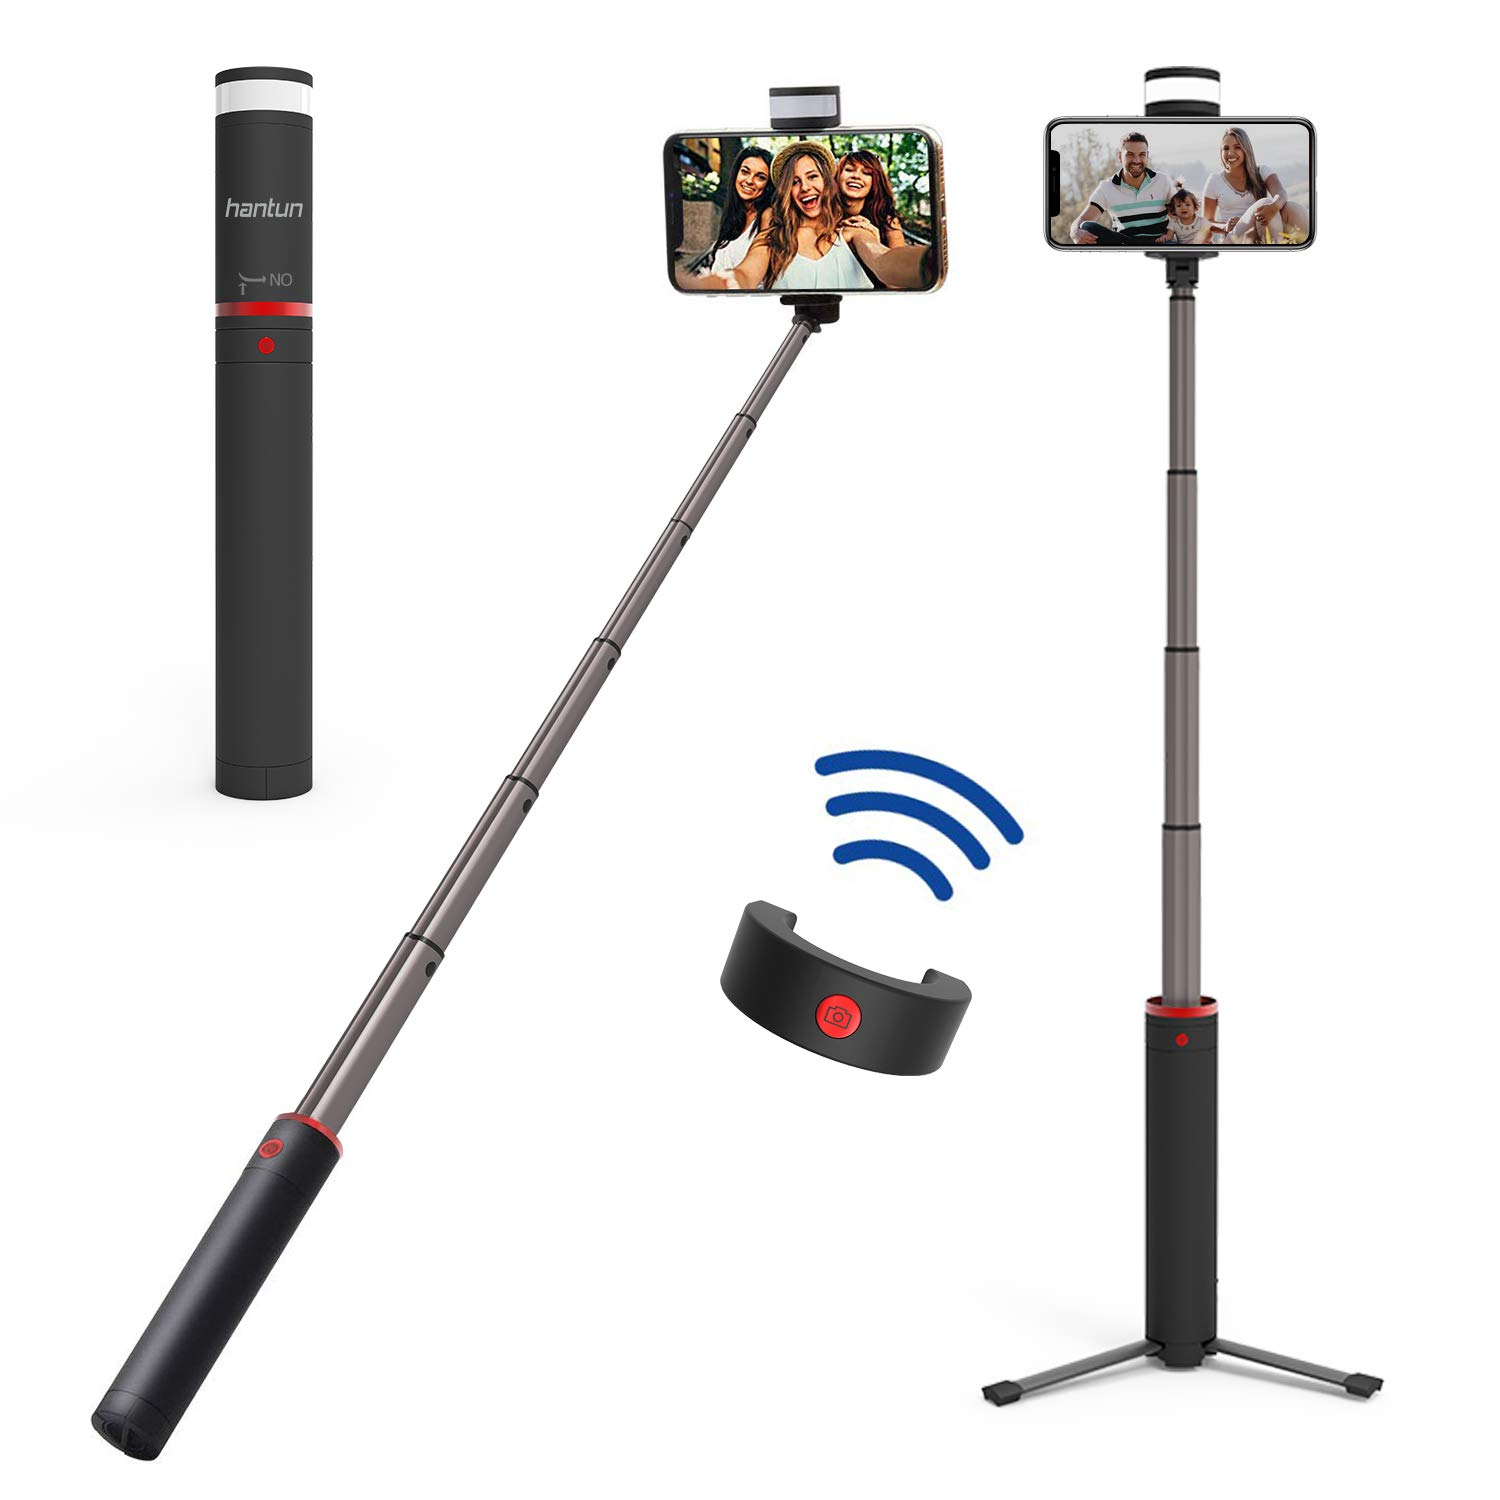 Hantun Selfie Stick Tripod, 3 in 1 Extendable Bluetooth Selfie Stick with Wireless Remote Shutter and Fill Light for iPhone Xs/Xs Max/XR/X/8, Galaxy S10/9/8/Note, Google Pixel and All Andriod Phones by hantun